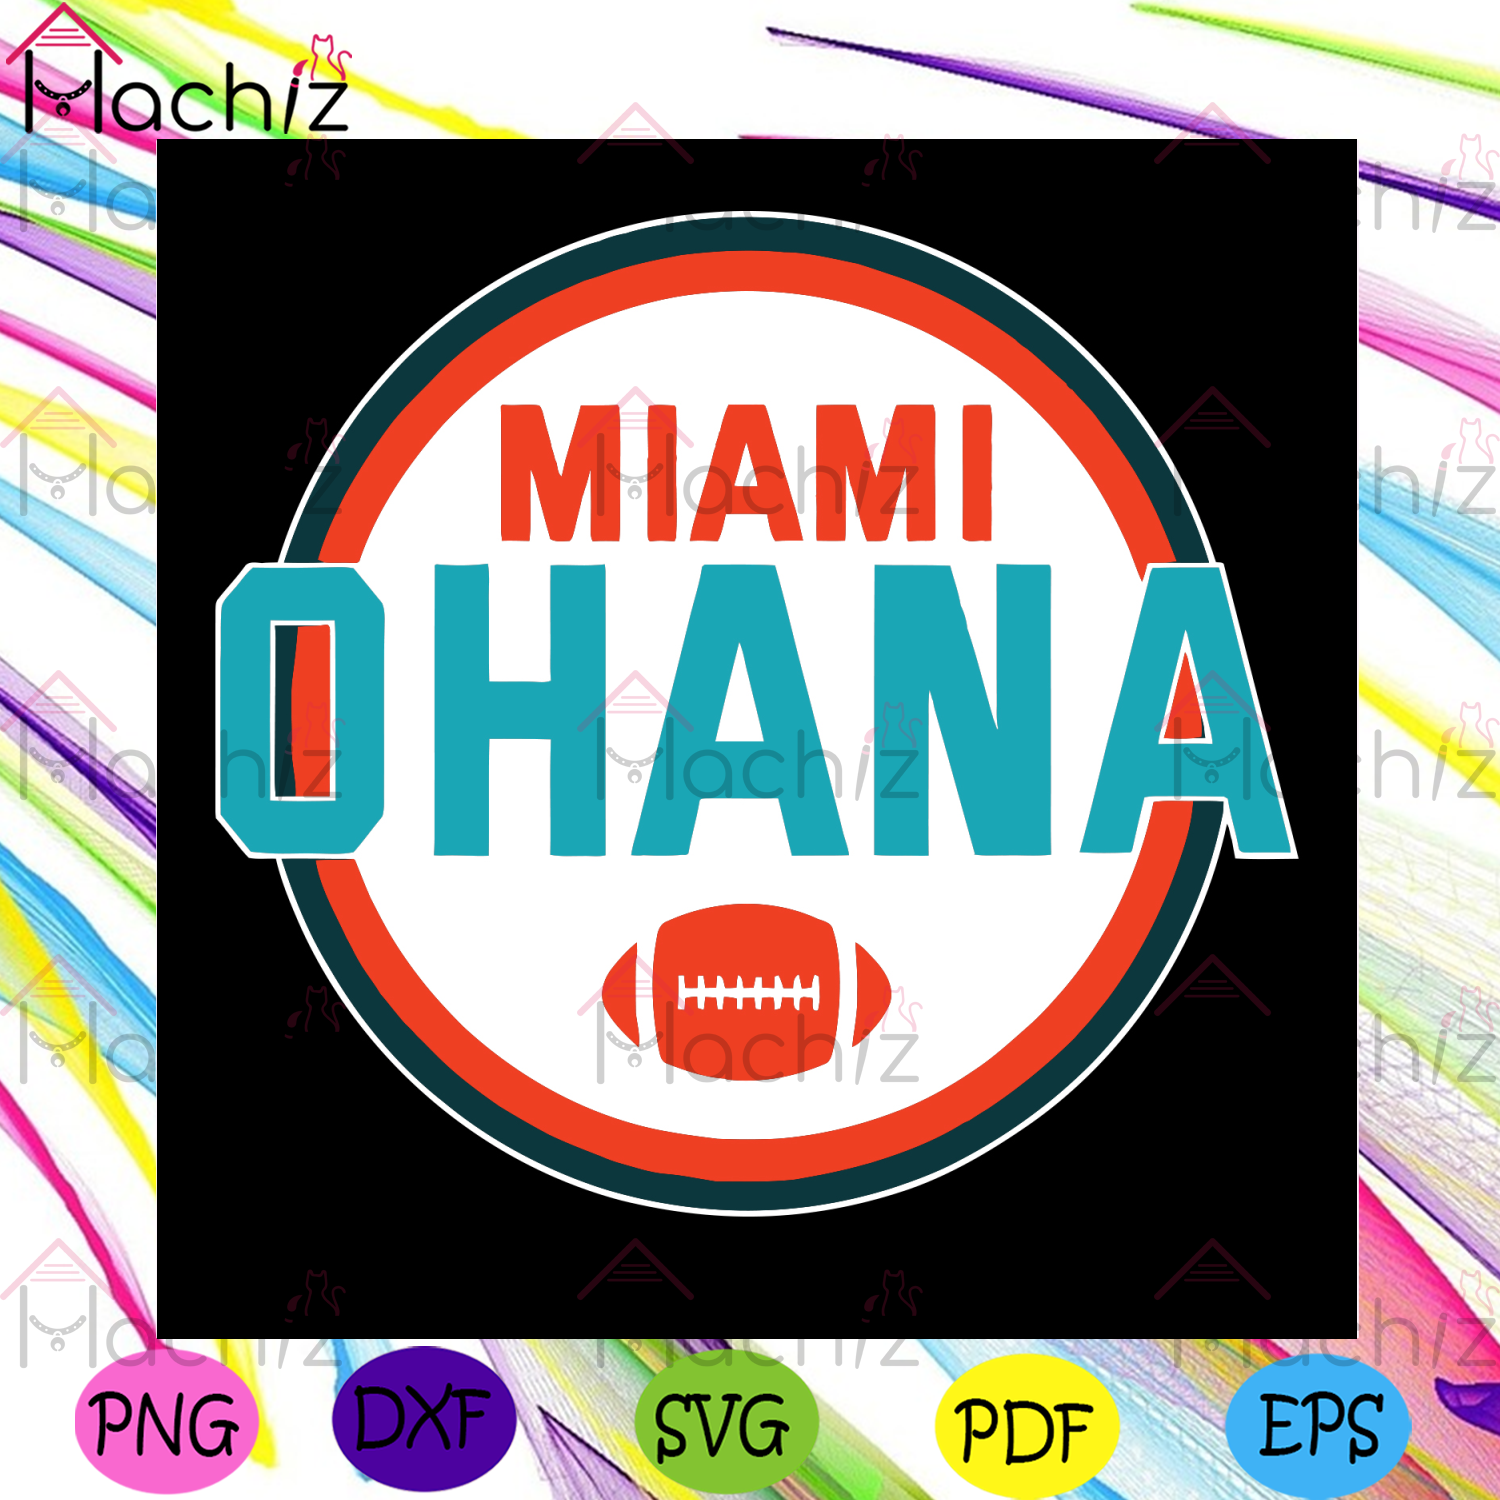 Miami Ohana Svg, Sport Svg, Miami Football Svg, Football Svg, Football Team Svg, Miami Gifts Svg, Football Lovers Svg, Football Gifts Svg, Sport Fans Svg, Sport Lovers Svg, Sport Gifts Svg, Vintage Svg, Vintage Design Svg, Retro Svg